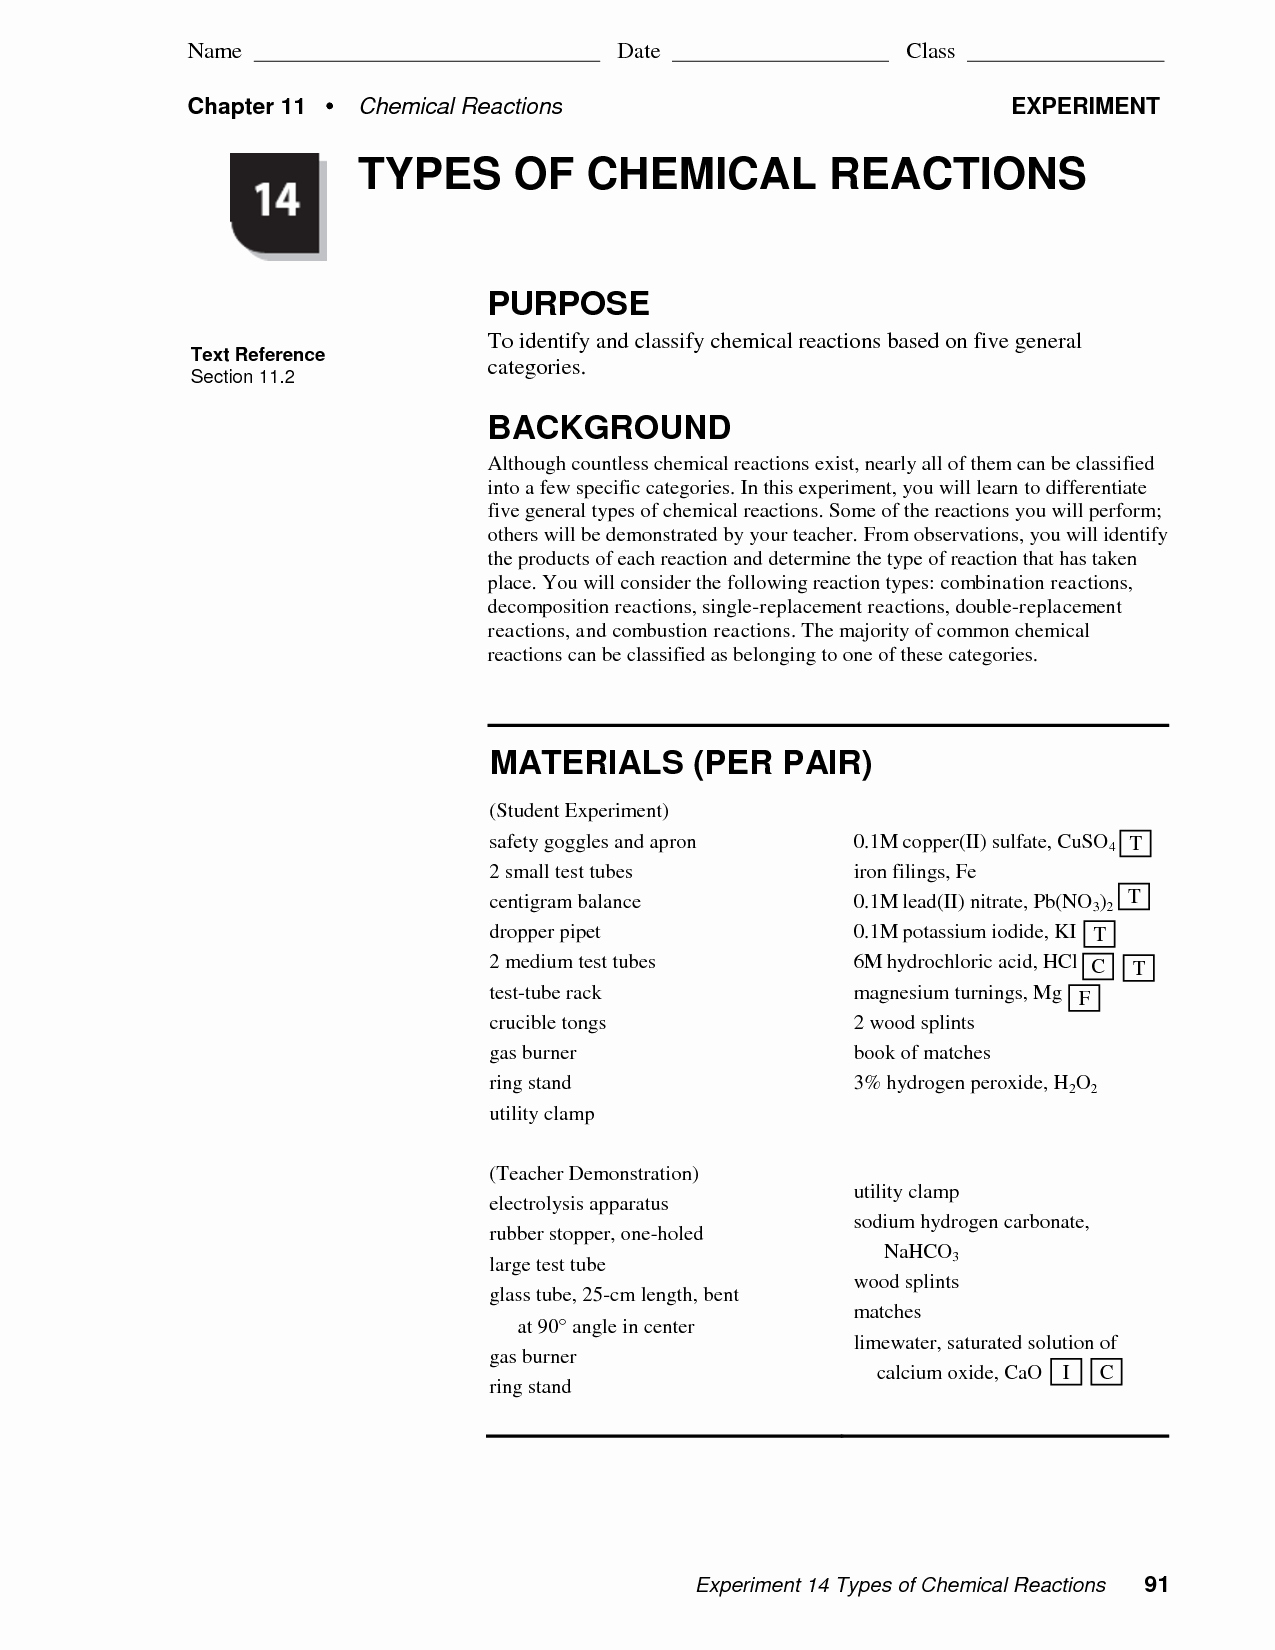 Classifying Chemical Reactions Worksheet Beautiful Worksheet Identifying Chemical Reactions Worksheet